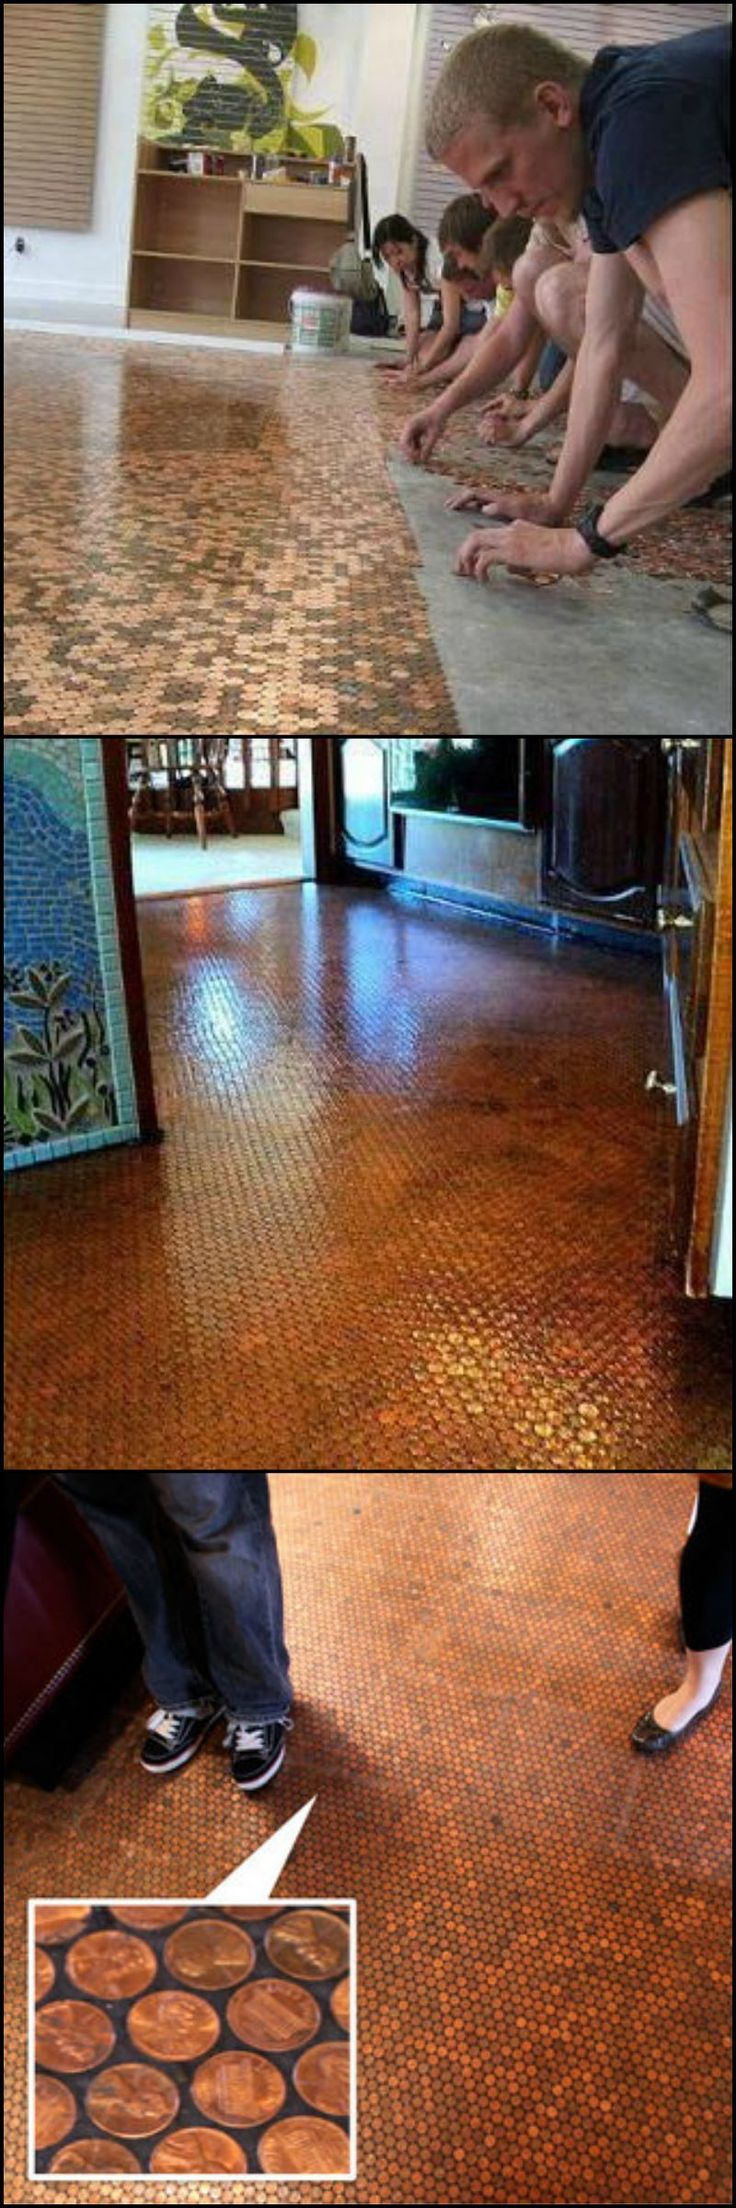 The Penny Floor. I absolutely love penny floors, walls, tables, or accents!